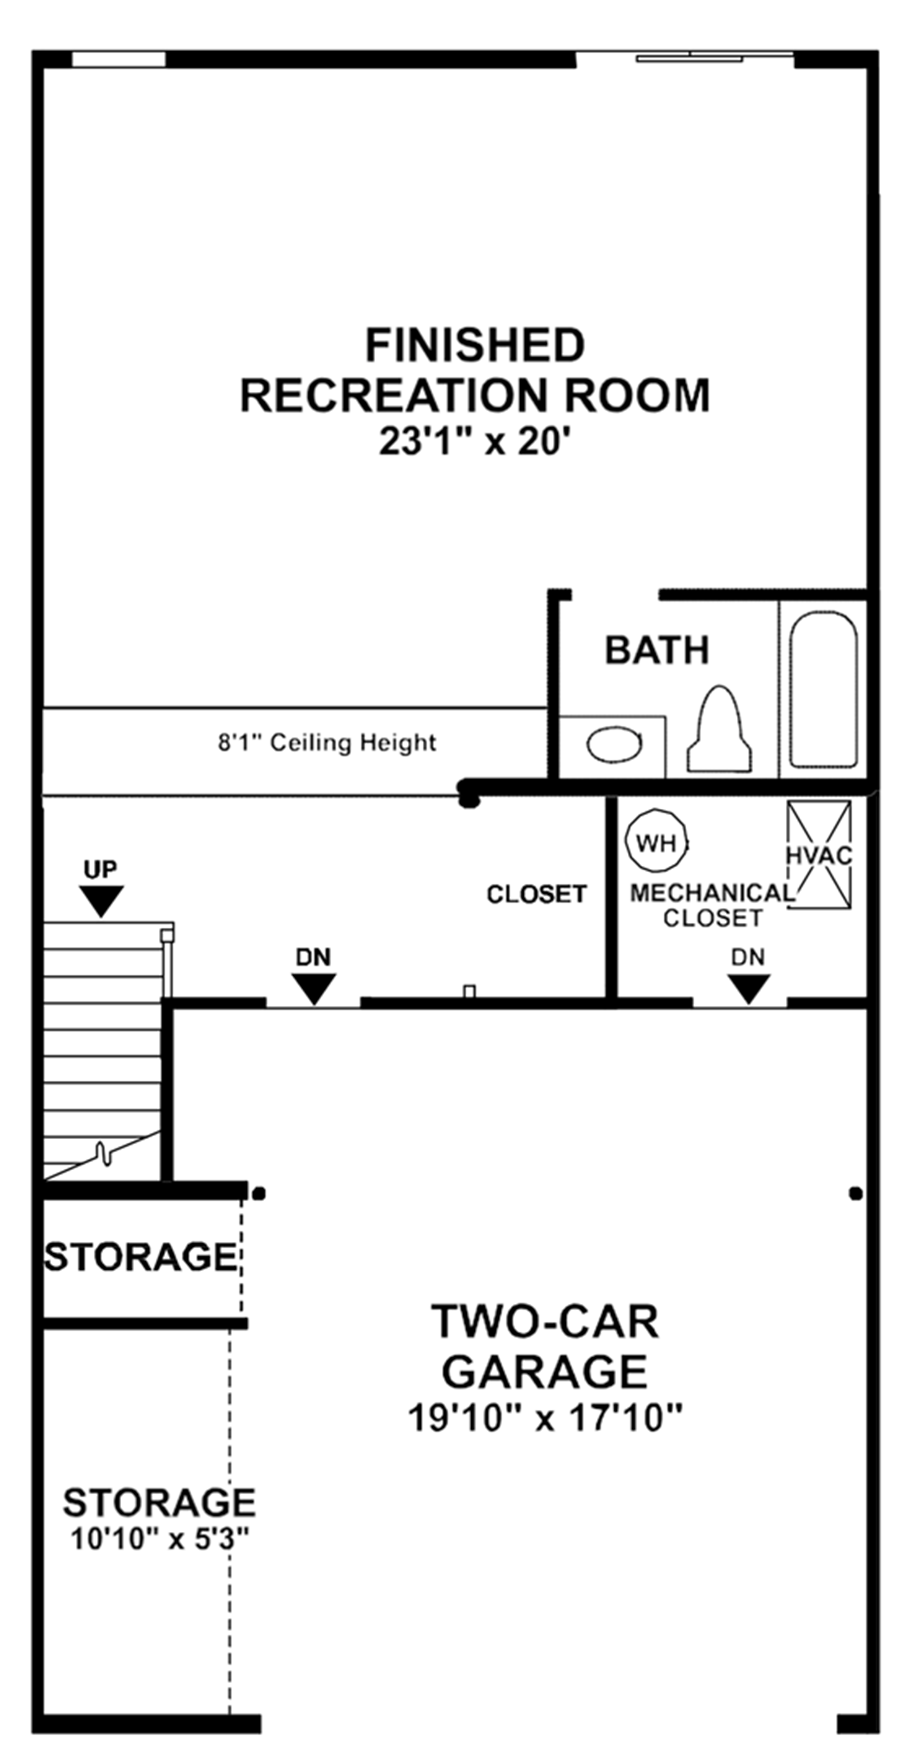 Optional Lower Level Full Bath and 4' Extension Floor Plan